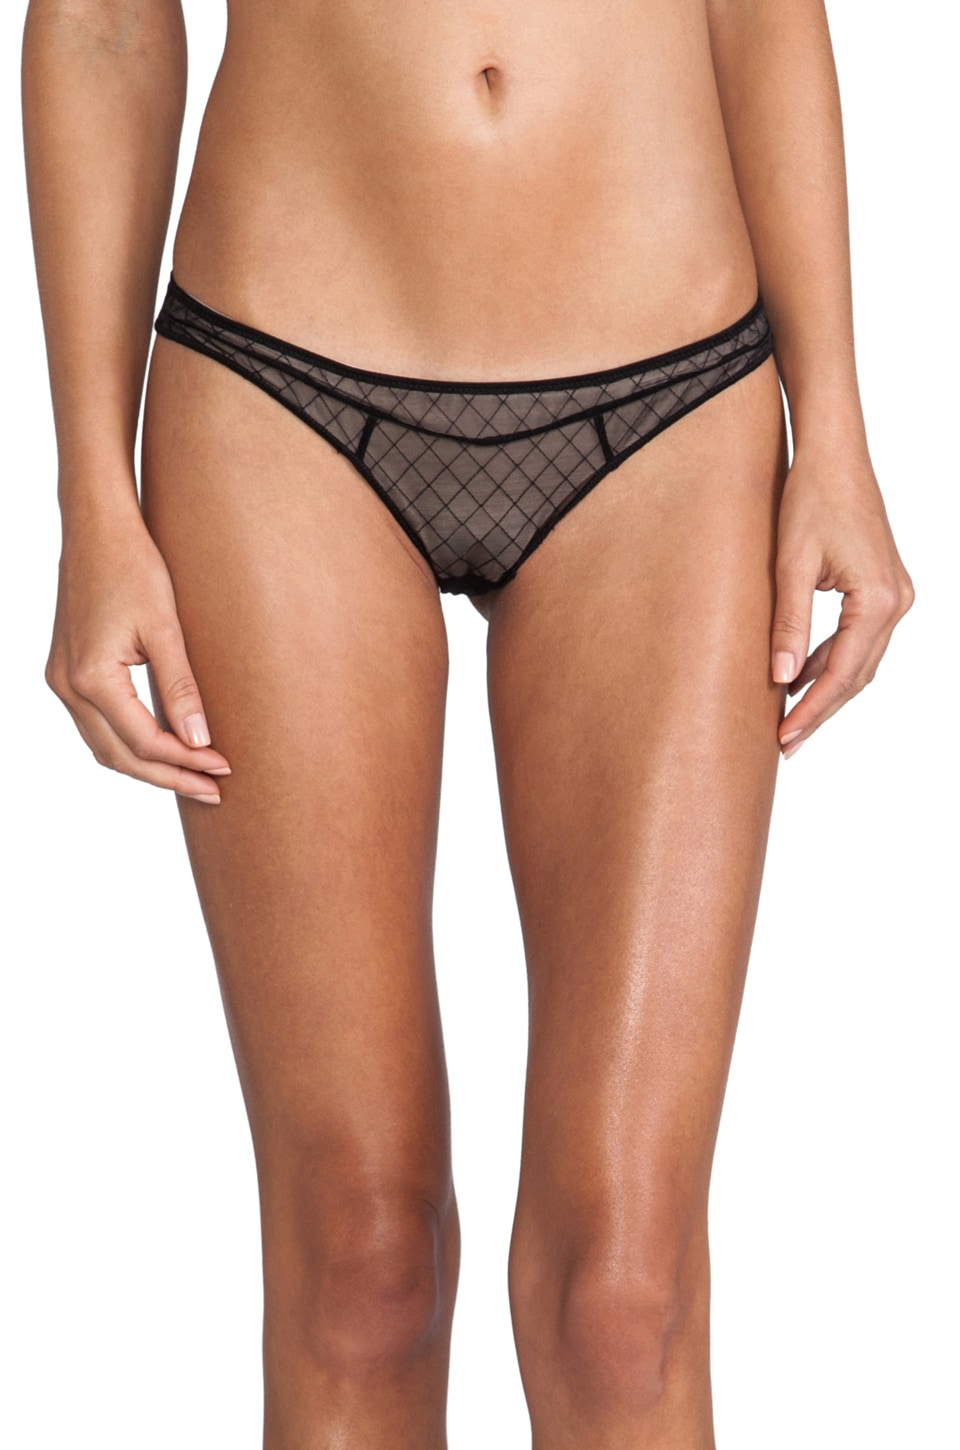 Beach Bunny Classy Couture Hipster Panty in Black